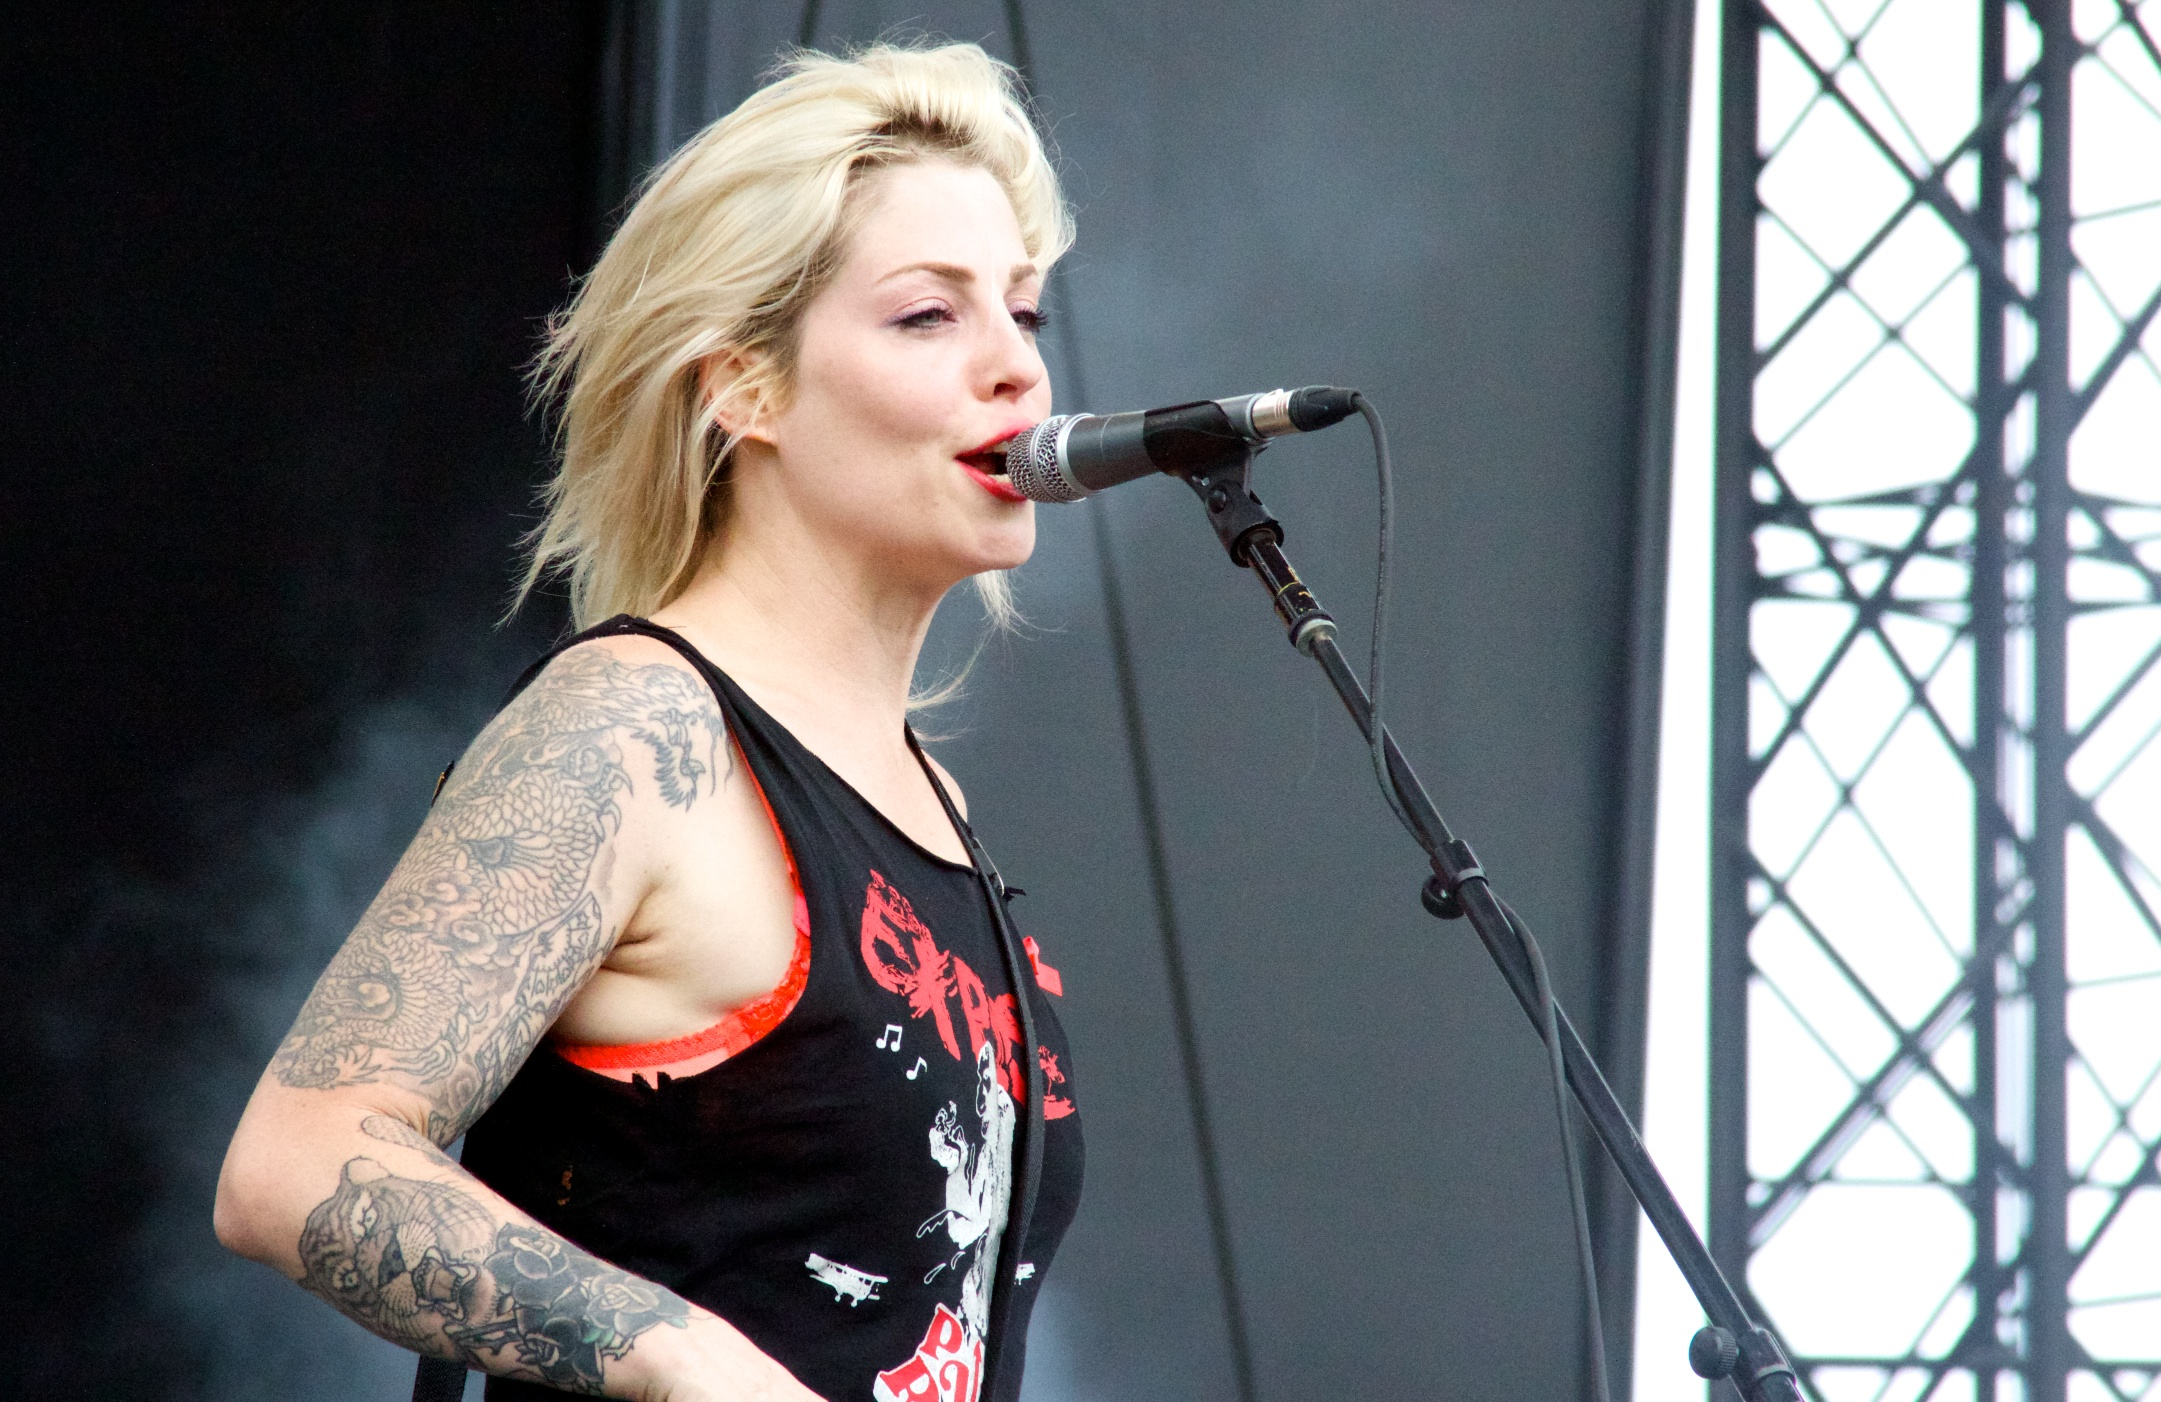 brody dalle wallpapers high quality download free. Black Bedroom Furniture Sets. Home Design Ideas